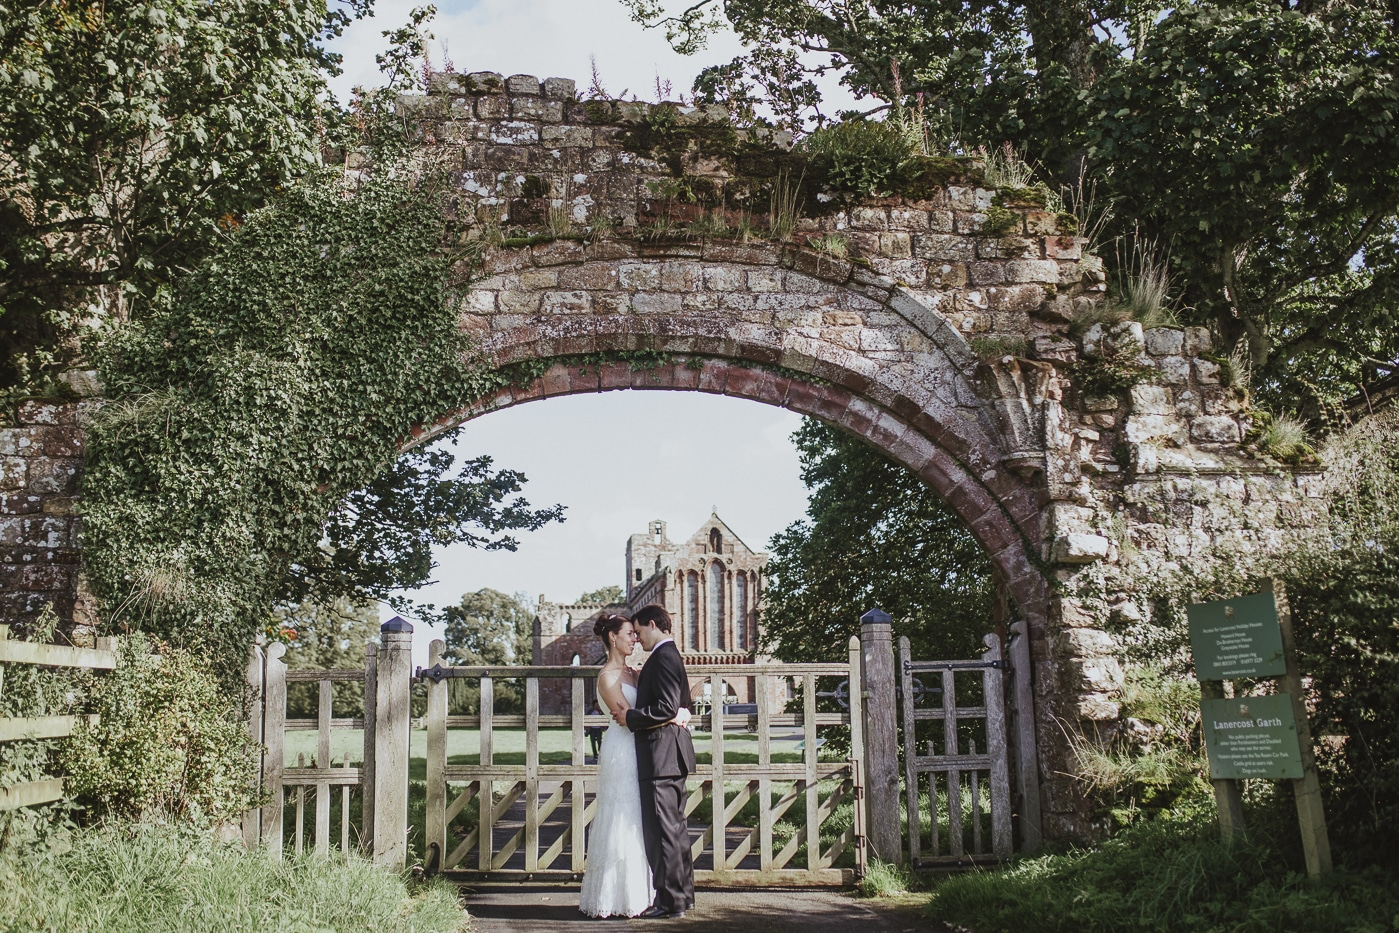 Couple under an archway after eloping by Joshua Wyborn Photographic